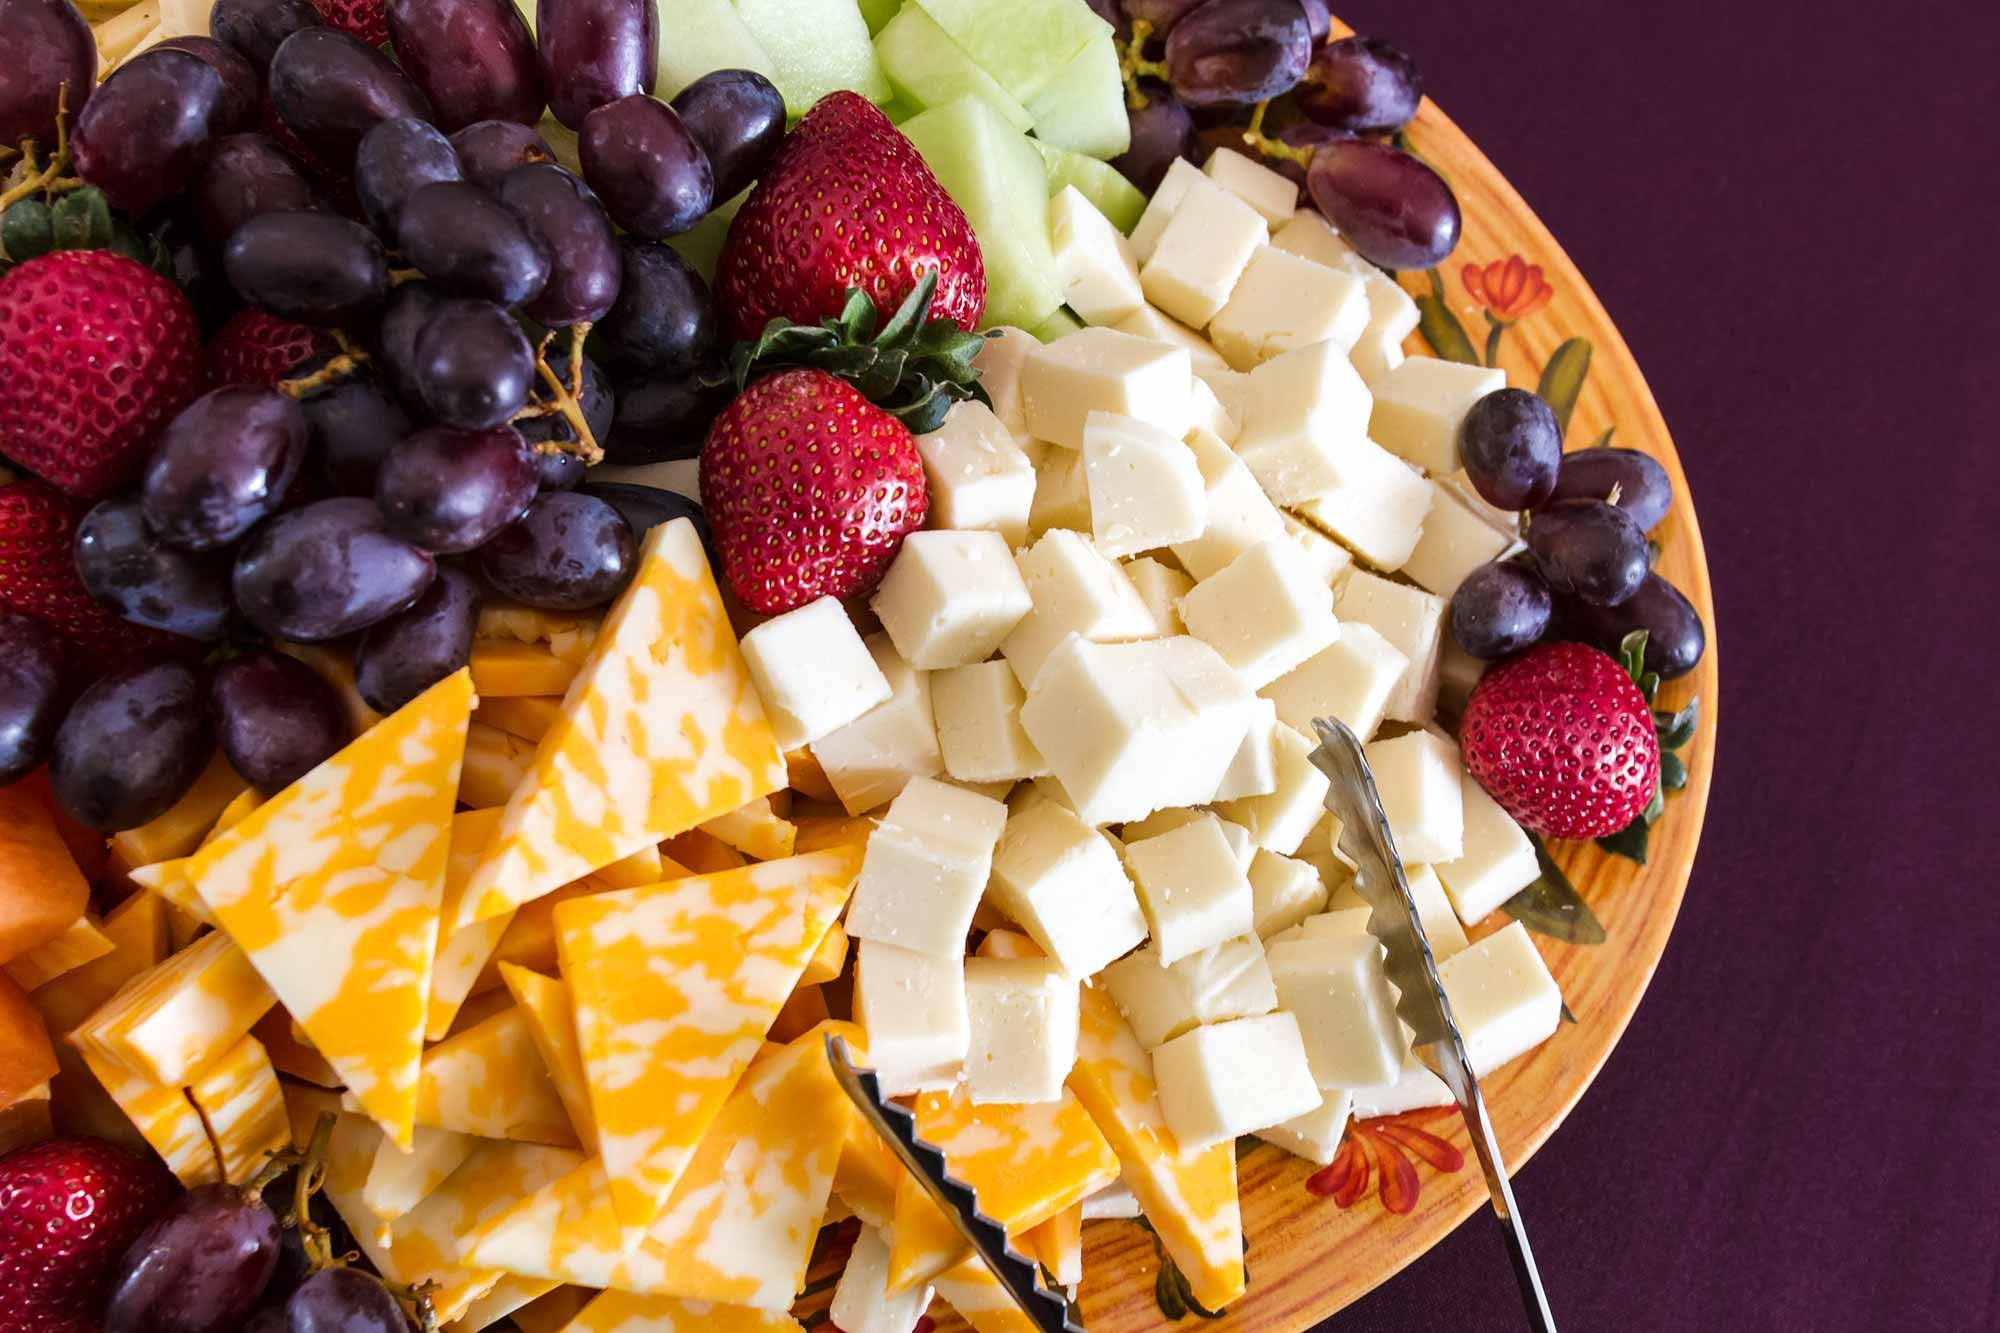 Cheese Platter with strawberries and grapes